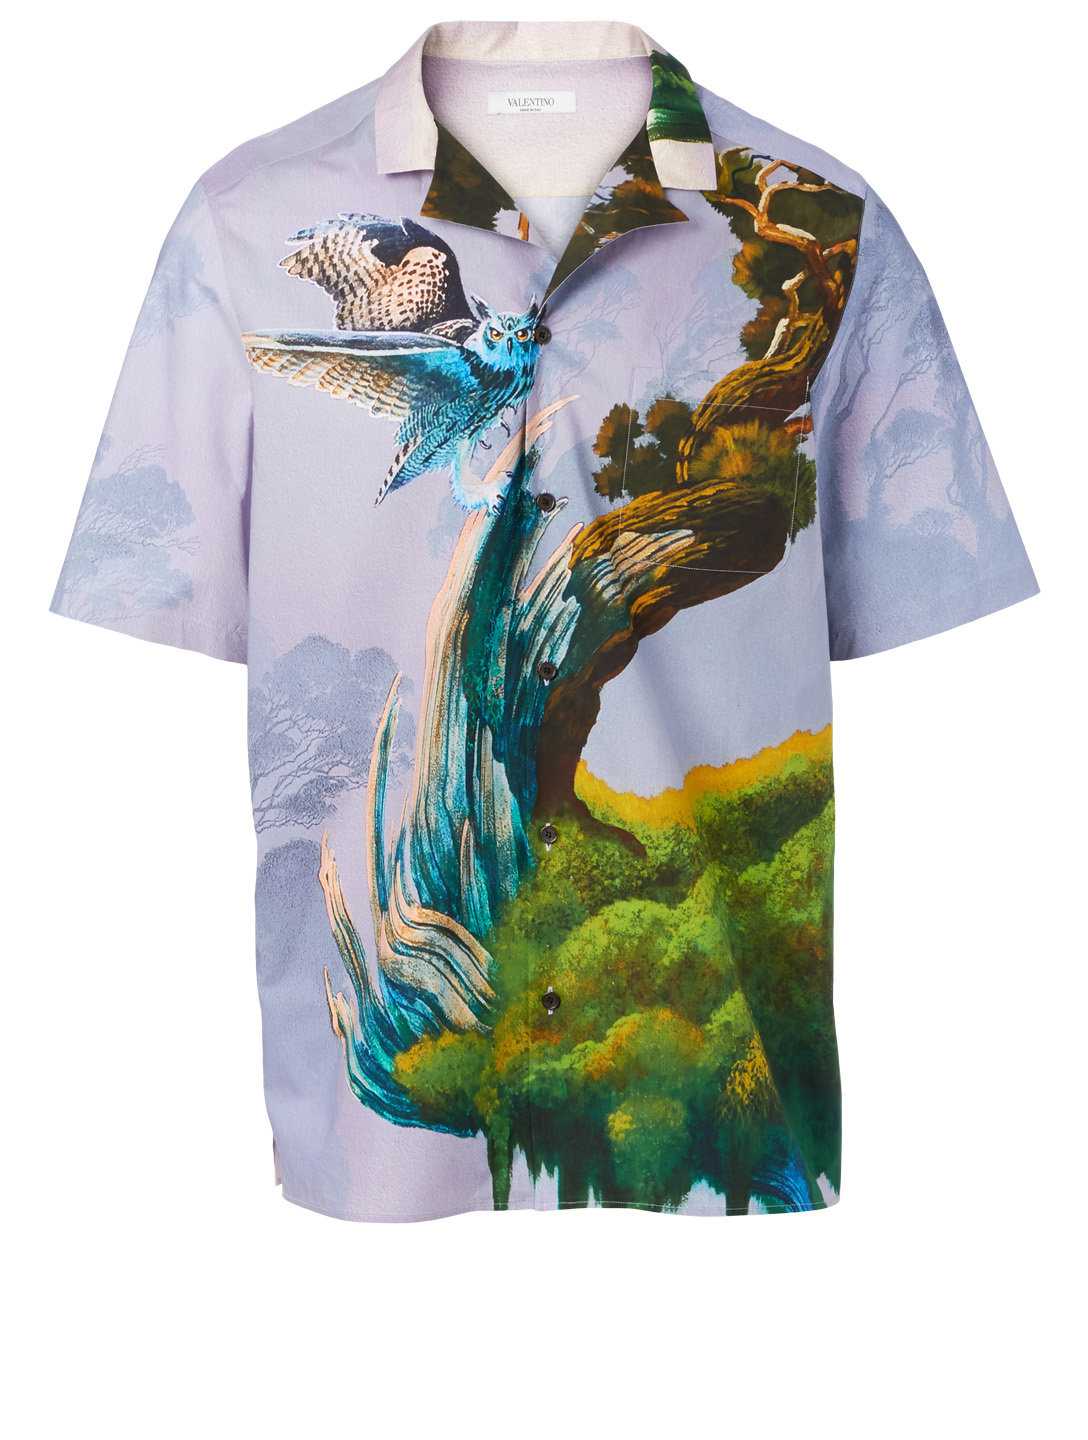 VALENTINO Blind Owl Short-Sleeve Shirt Men's Multi